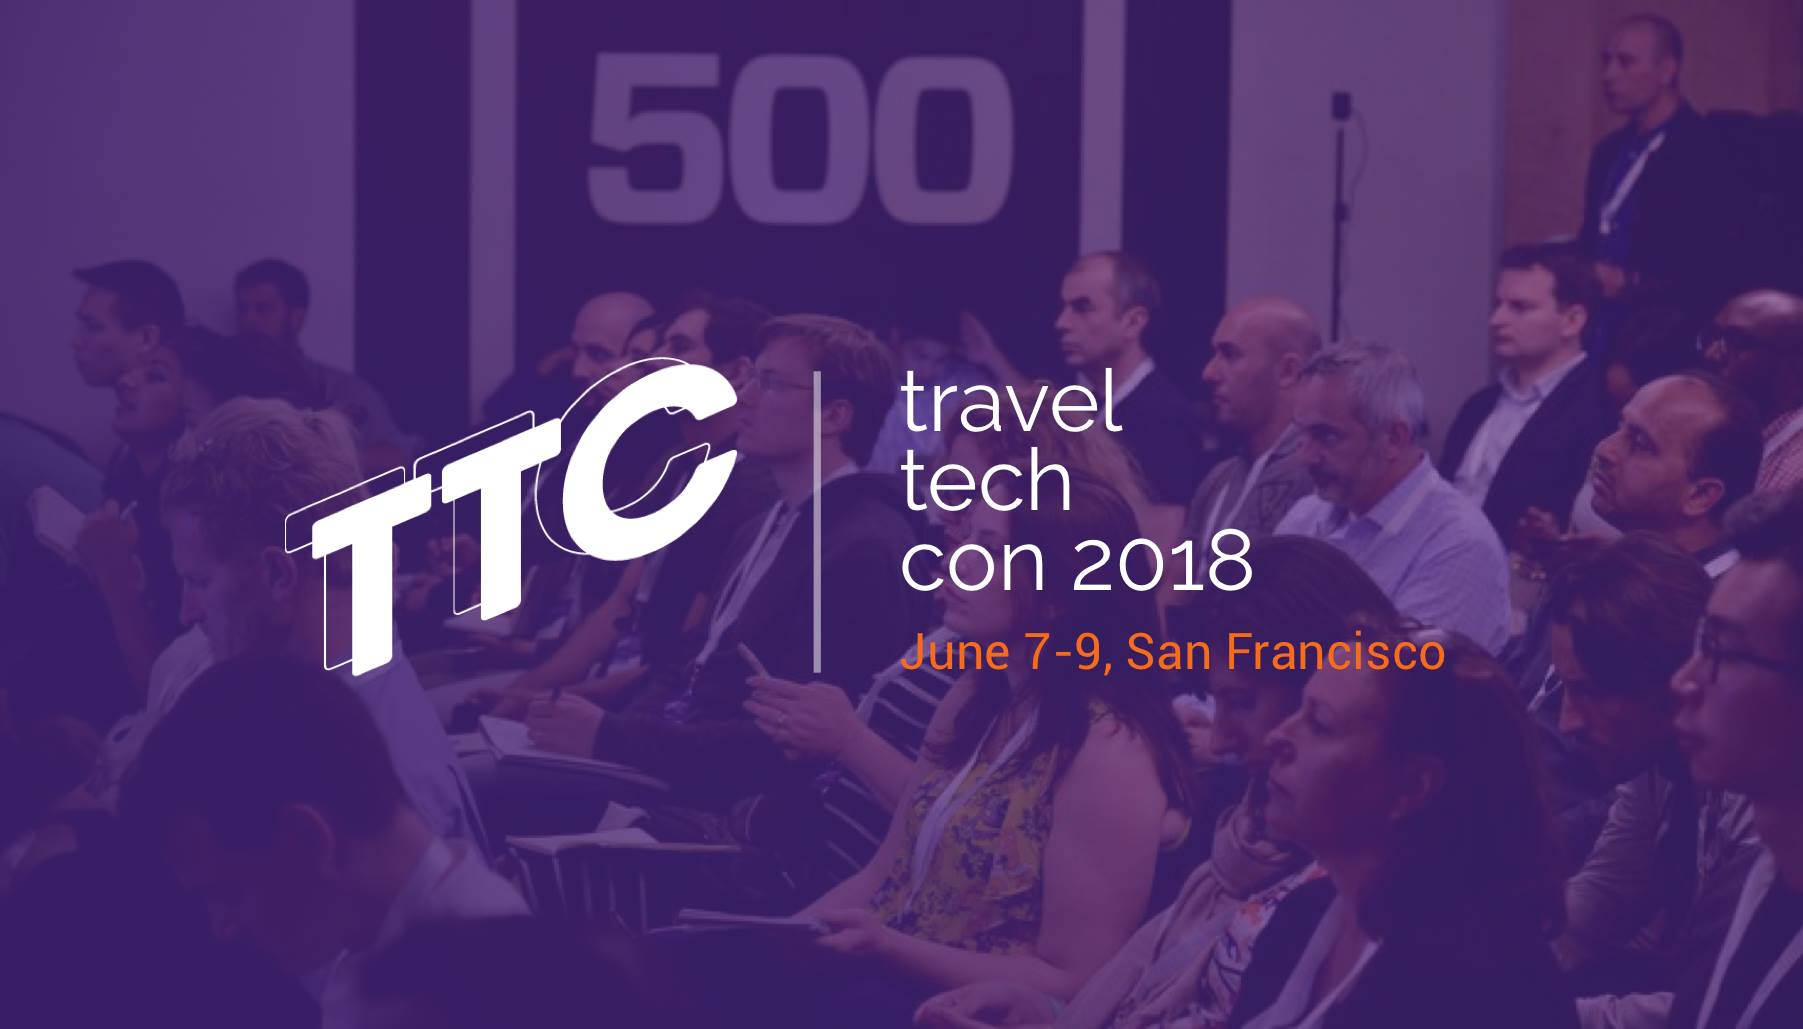 TRAVEL TECH CON - Social & Marketing Strategies for the Annual Conference